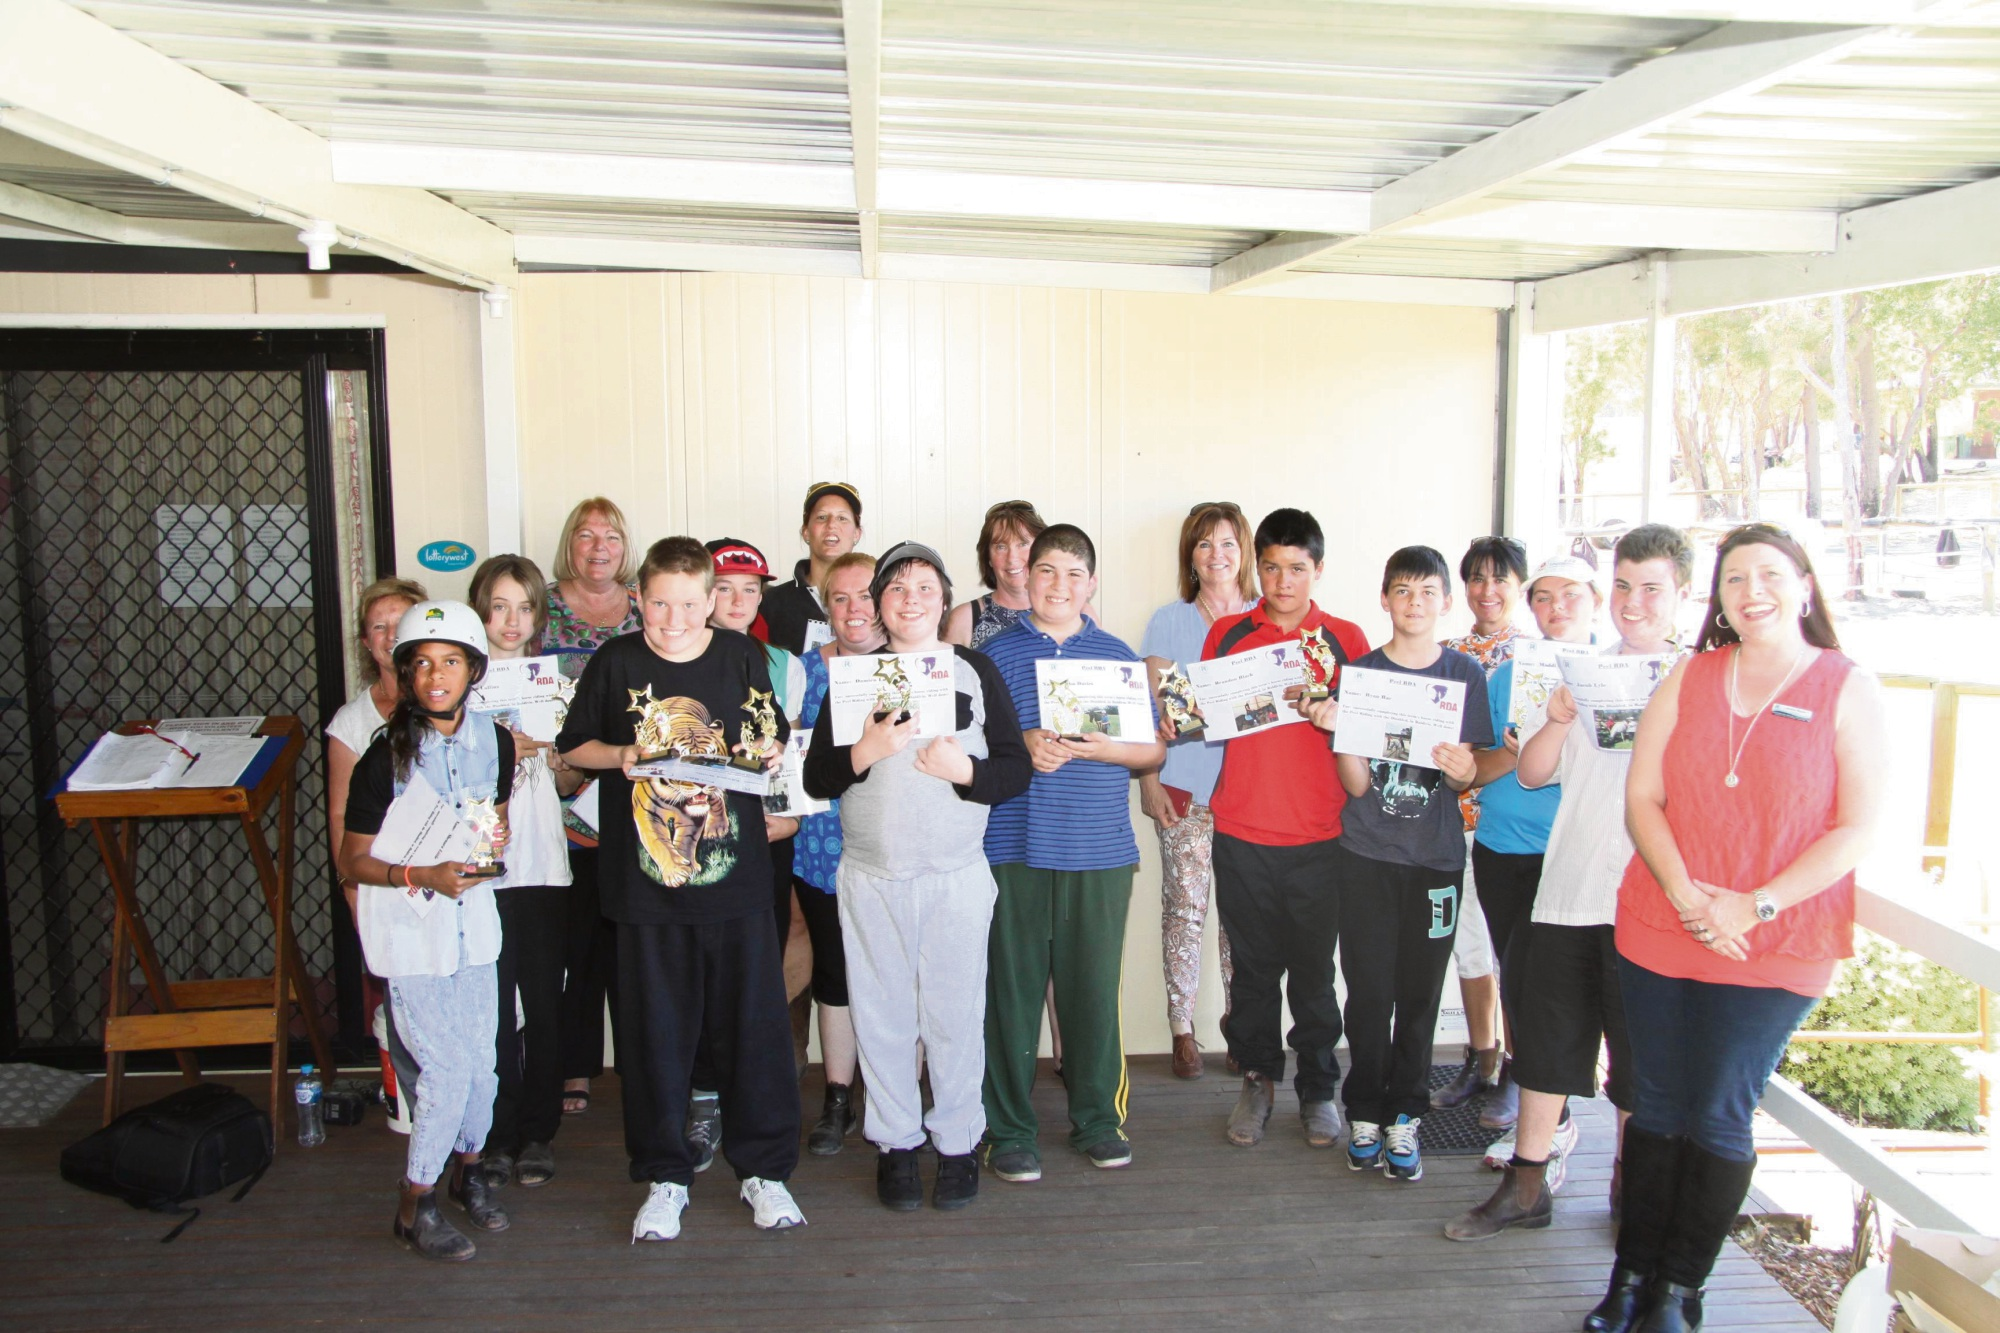 The Rockingham Senior High School Education Support Centre's horse-riding class |celebrate their successful year.